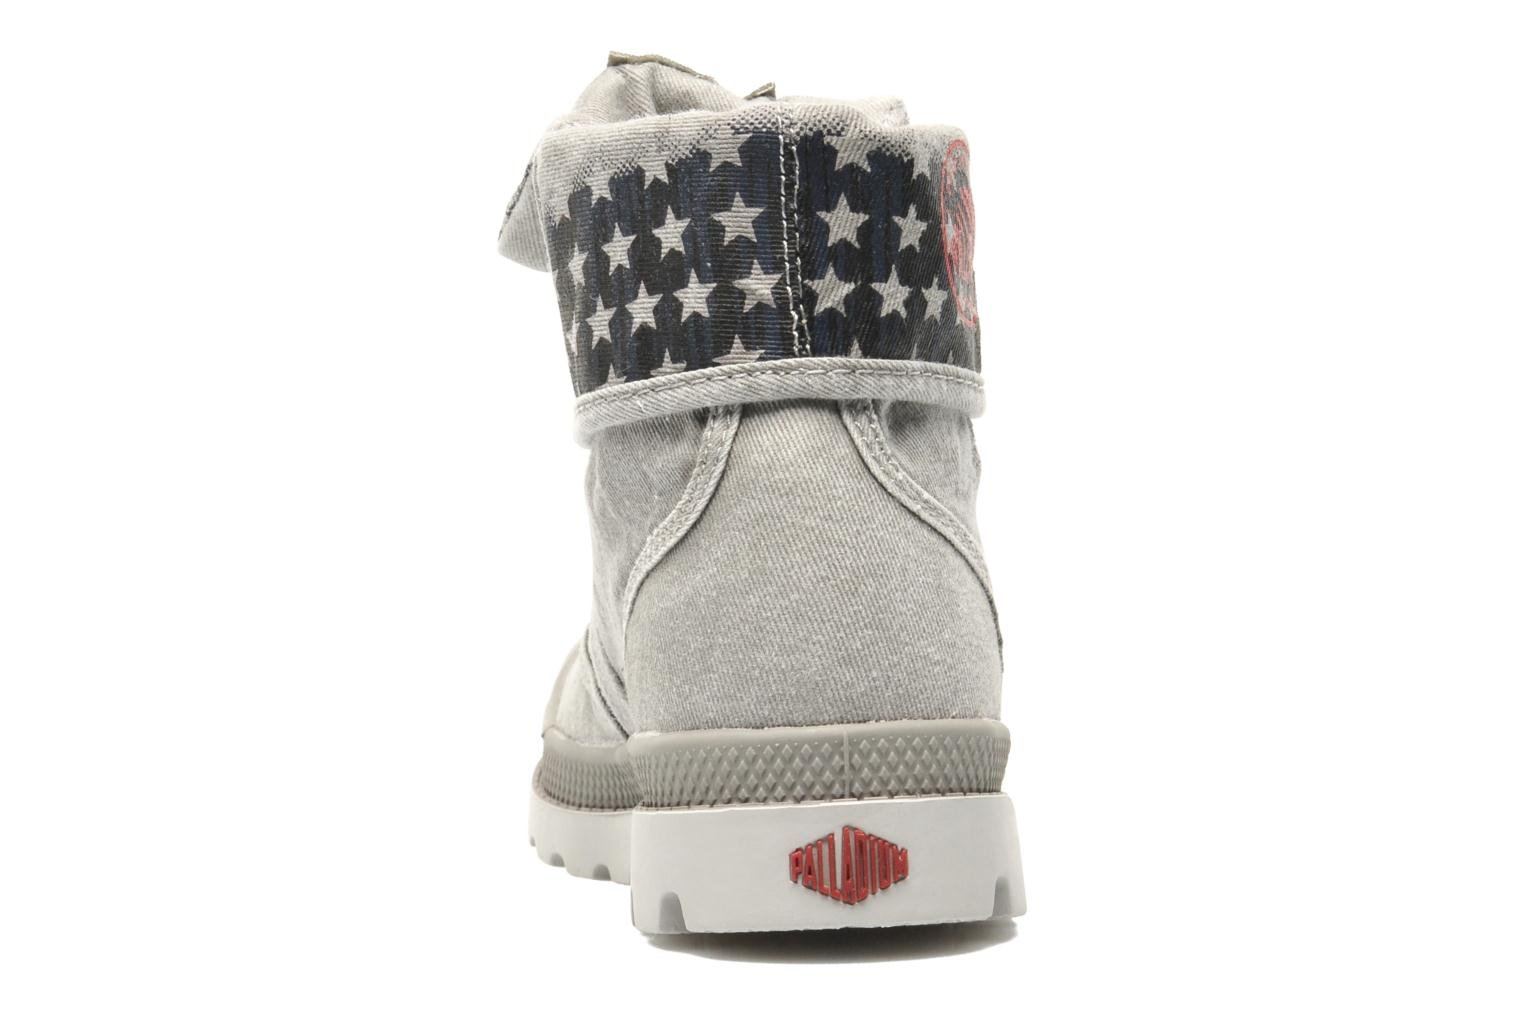 Bottines et boots Palladium Baggy Kid Flag Gris vue droite